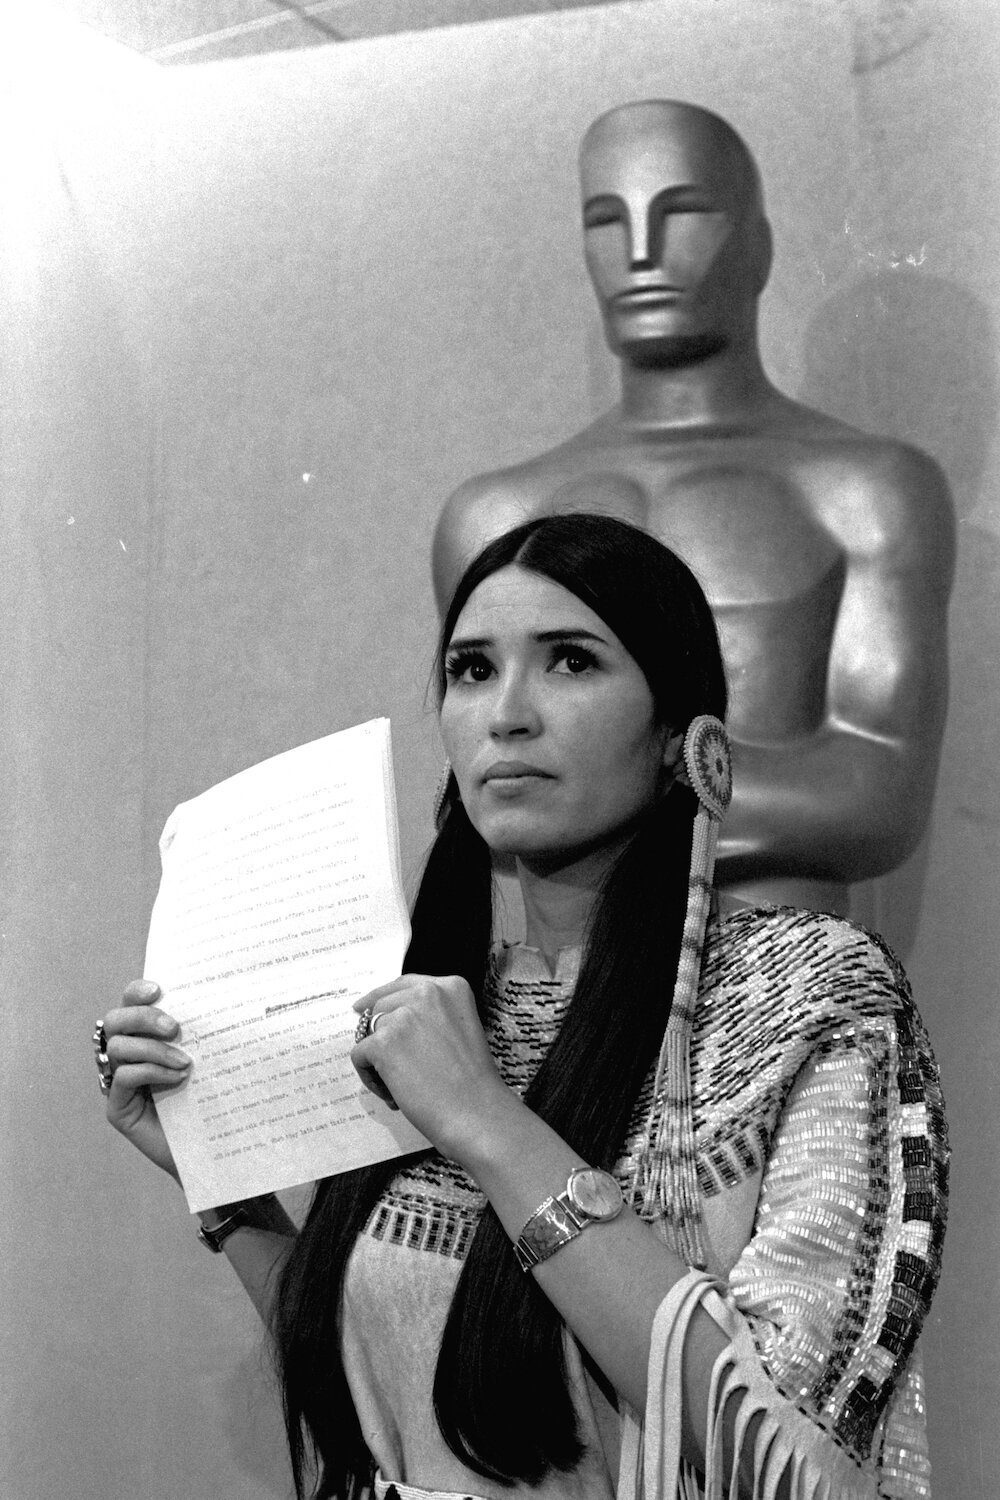 Sacheen Littlefeather 1973 oscars for marlon brando holding speech standing in front of oscar statue